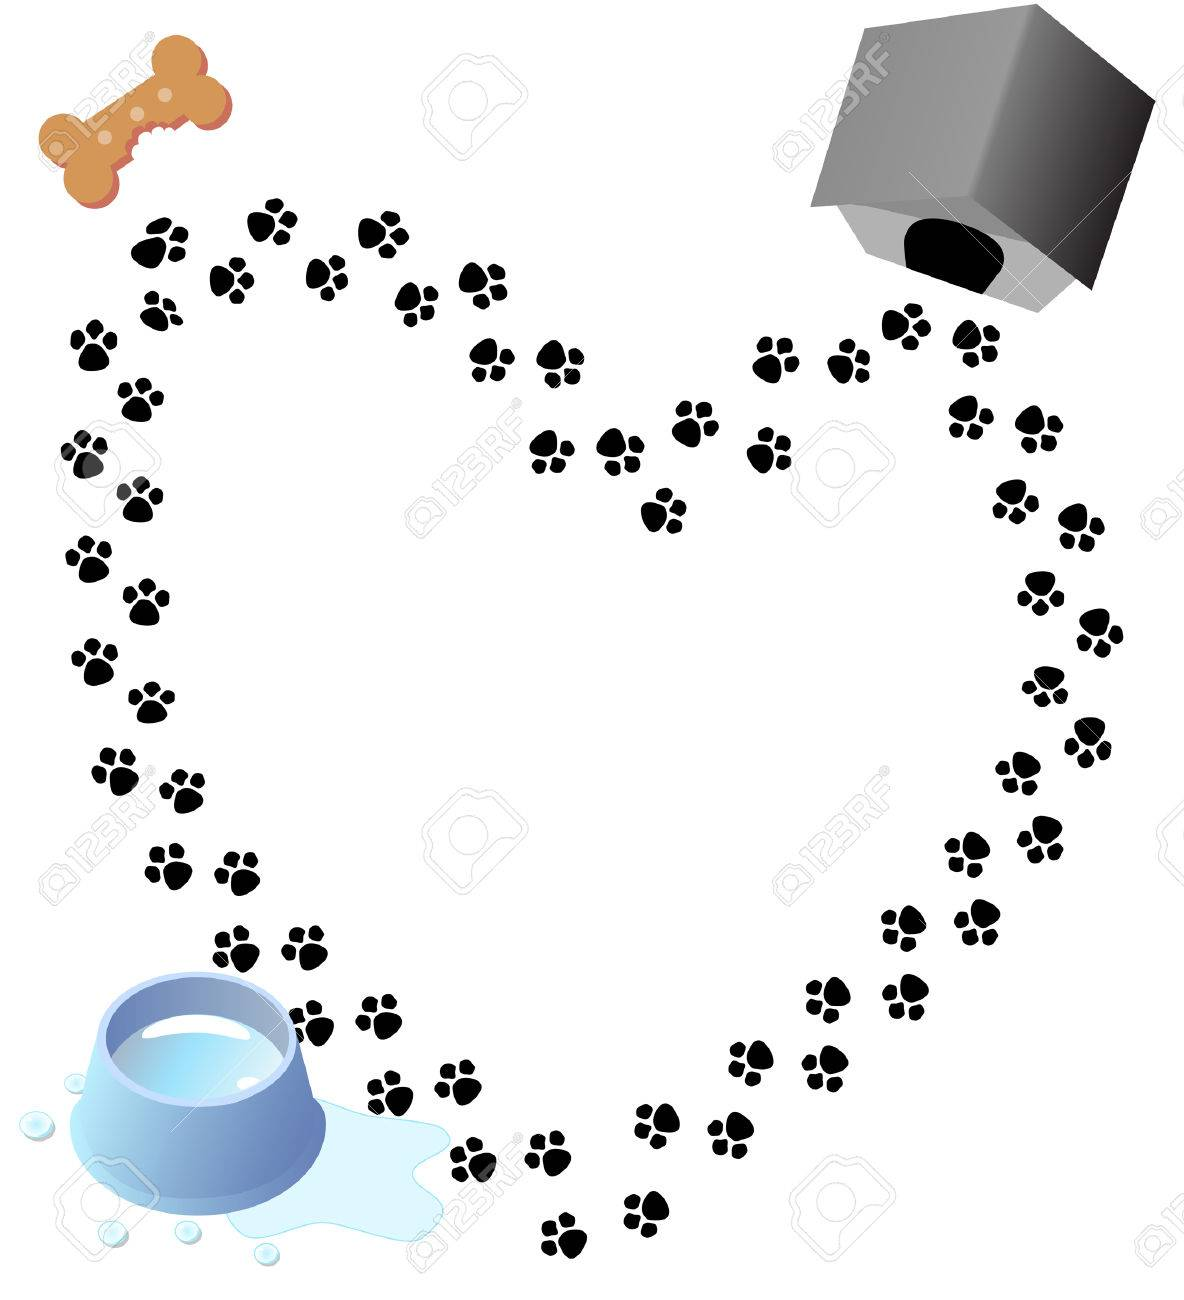 Puppy love heart shaped trail of paw prints through three doggy graphics. Stock Vector - 2520451